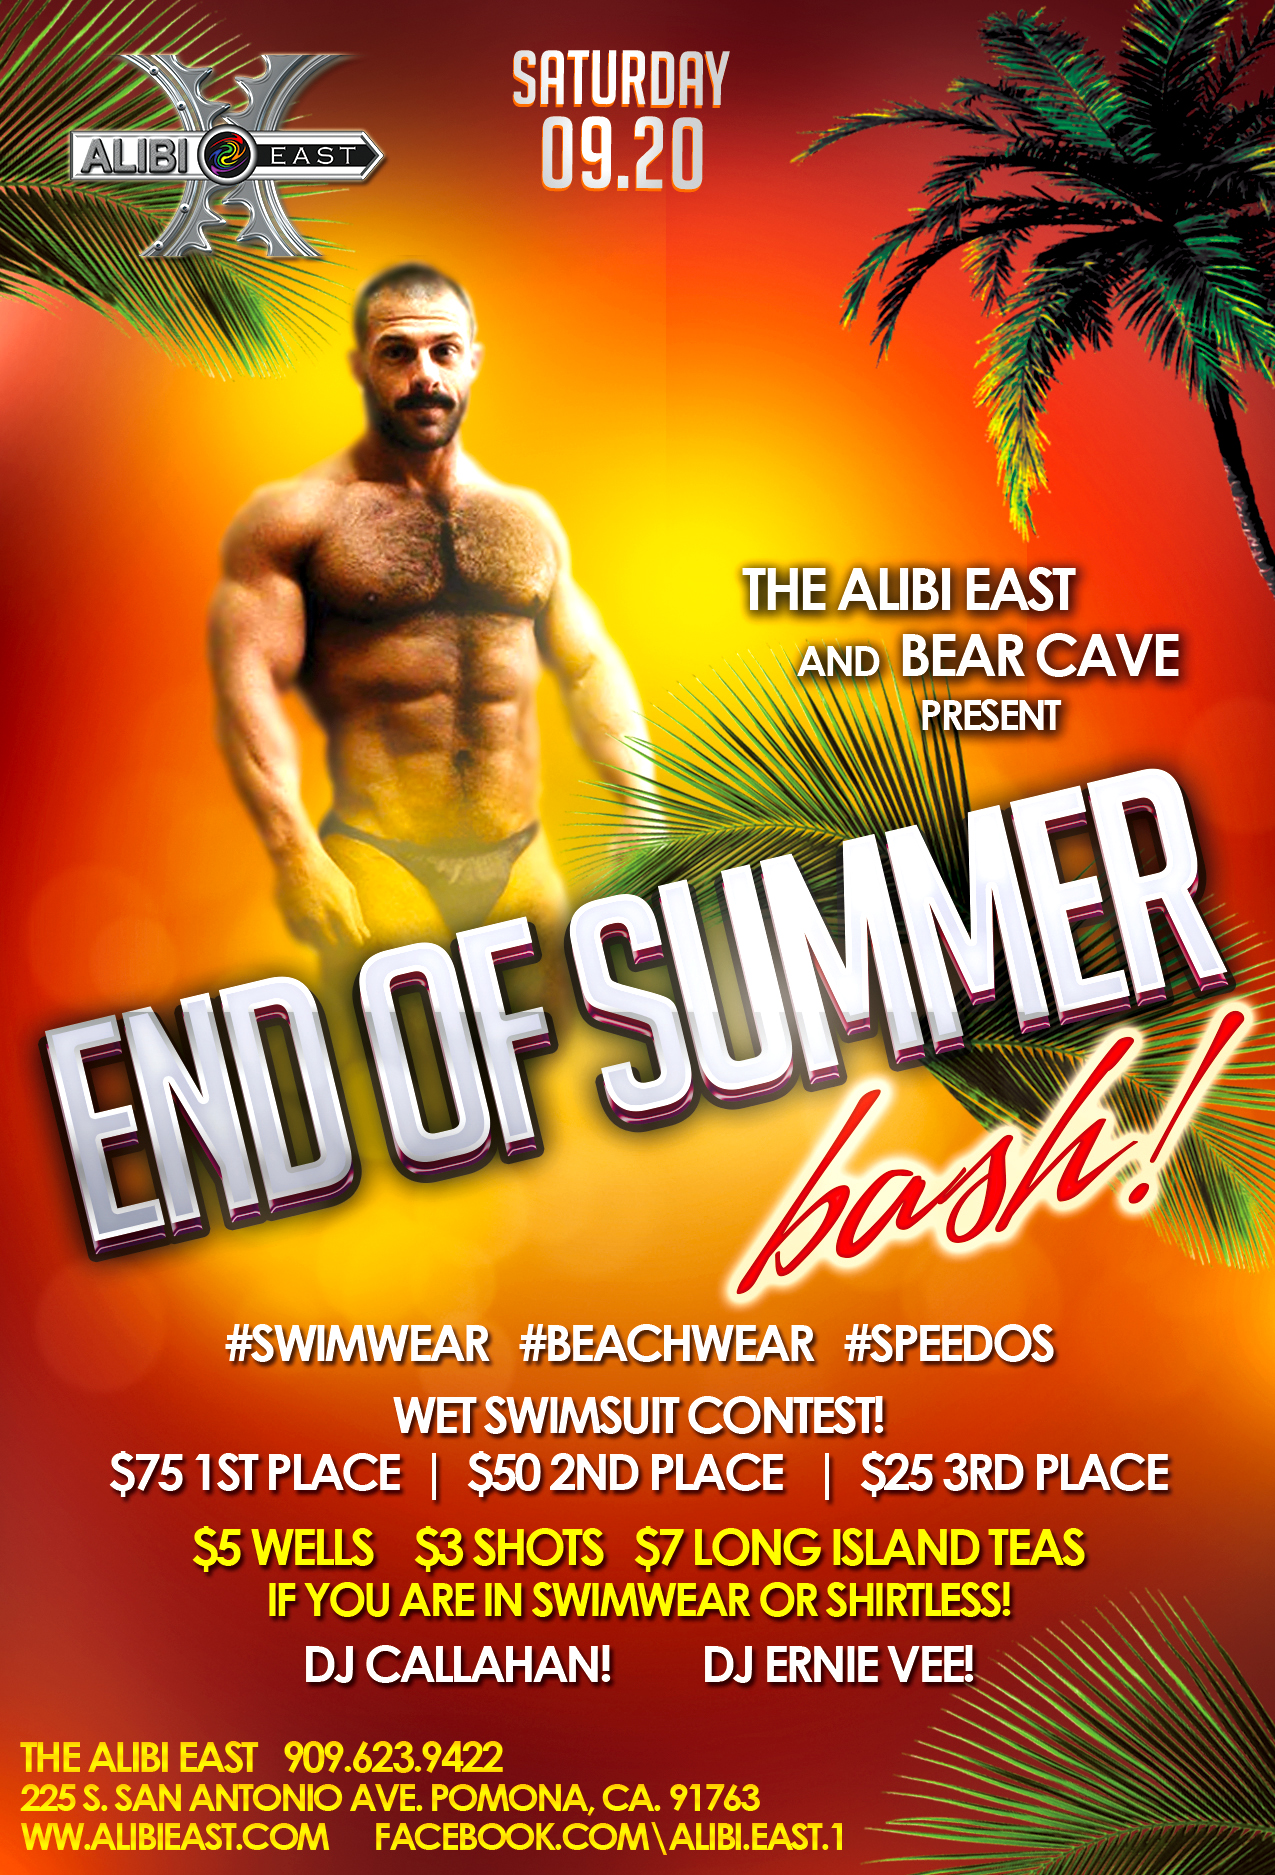 It's gonna be a great night tonight! Come join the fun! Wear your sexy swim or beach wear to enter the contest! Cheers!